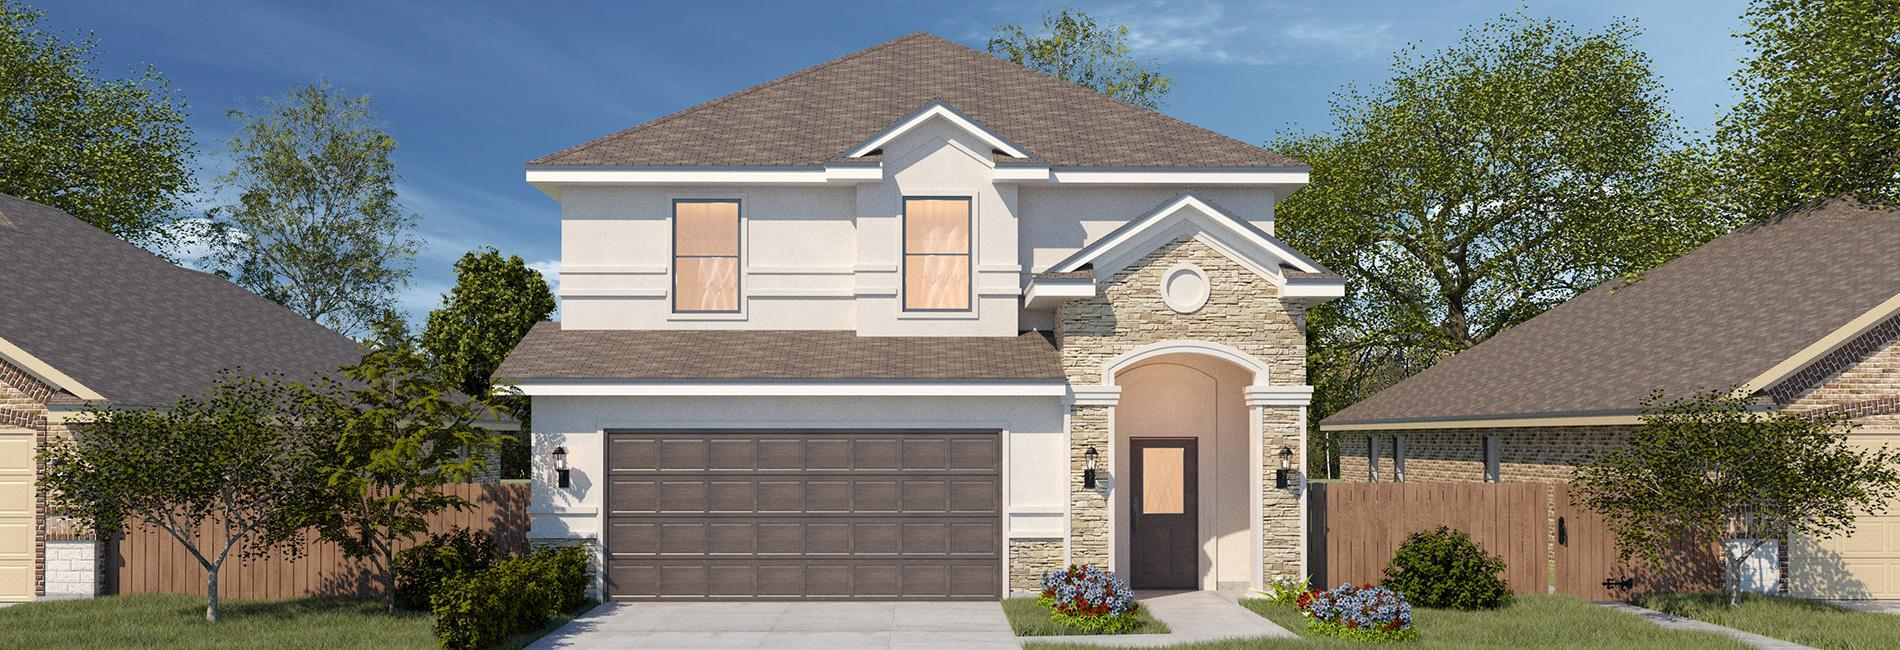 Exterior featured in the San Felipe By WestWind Homes in Laredo, TX